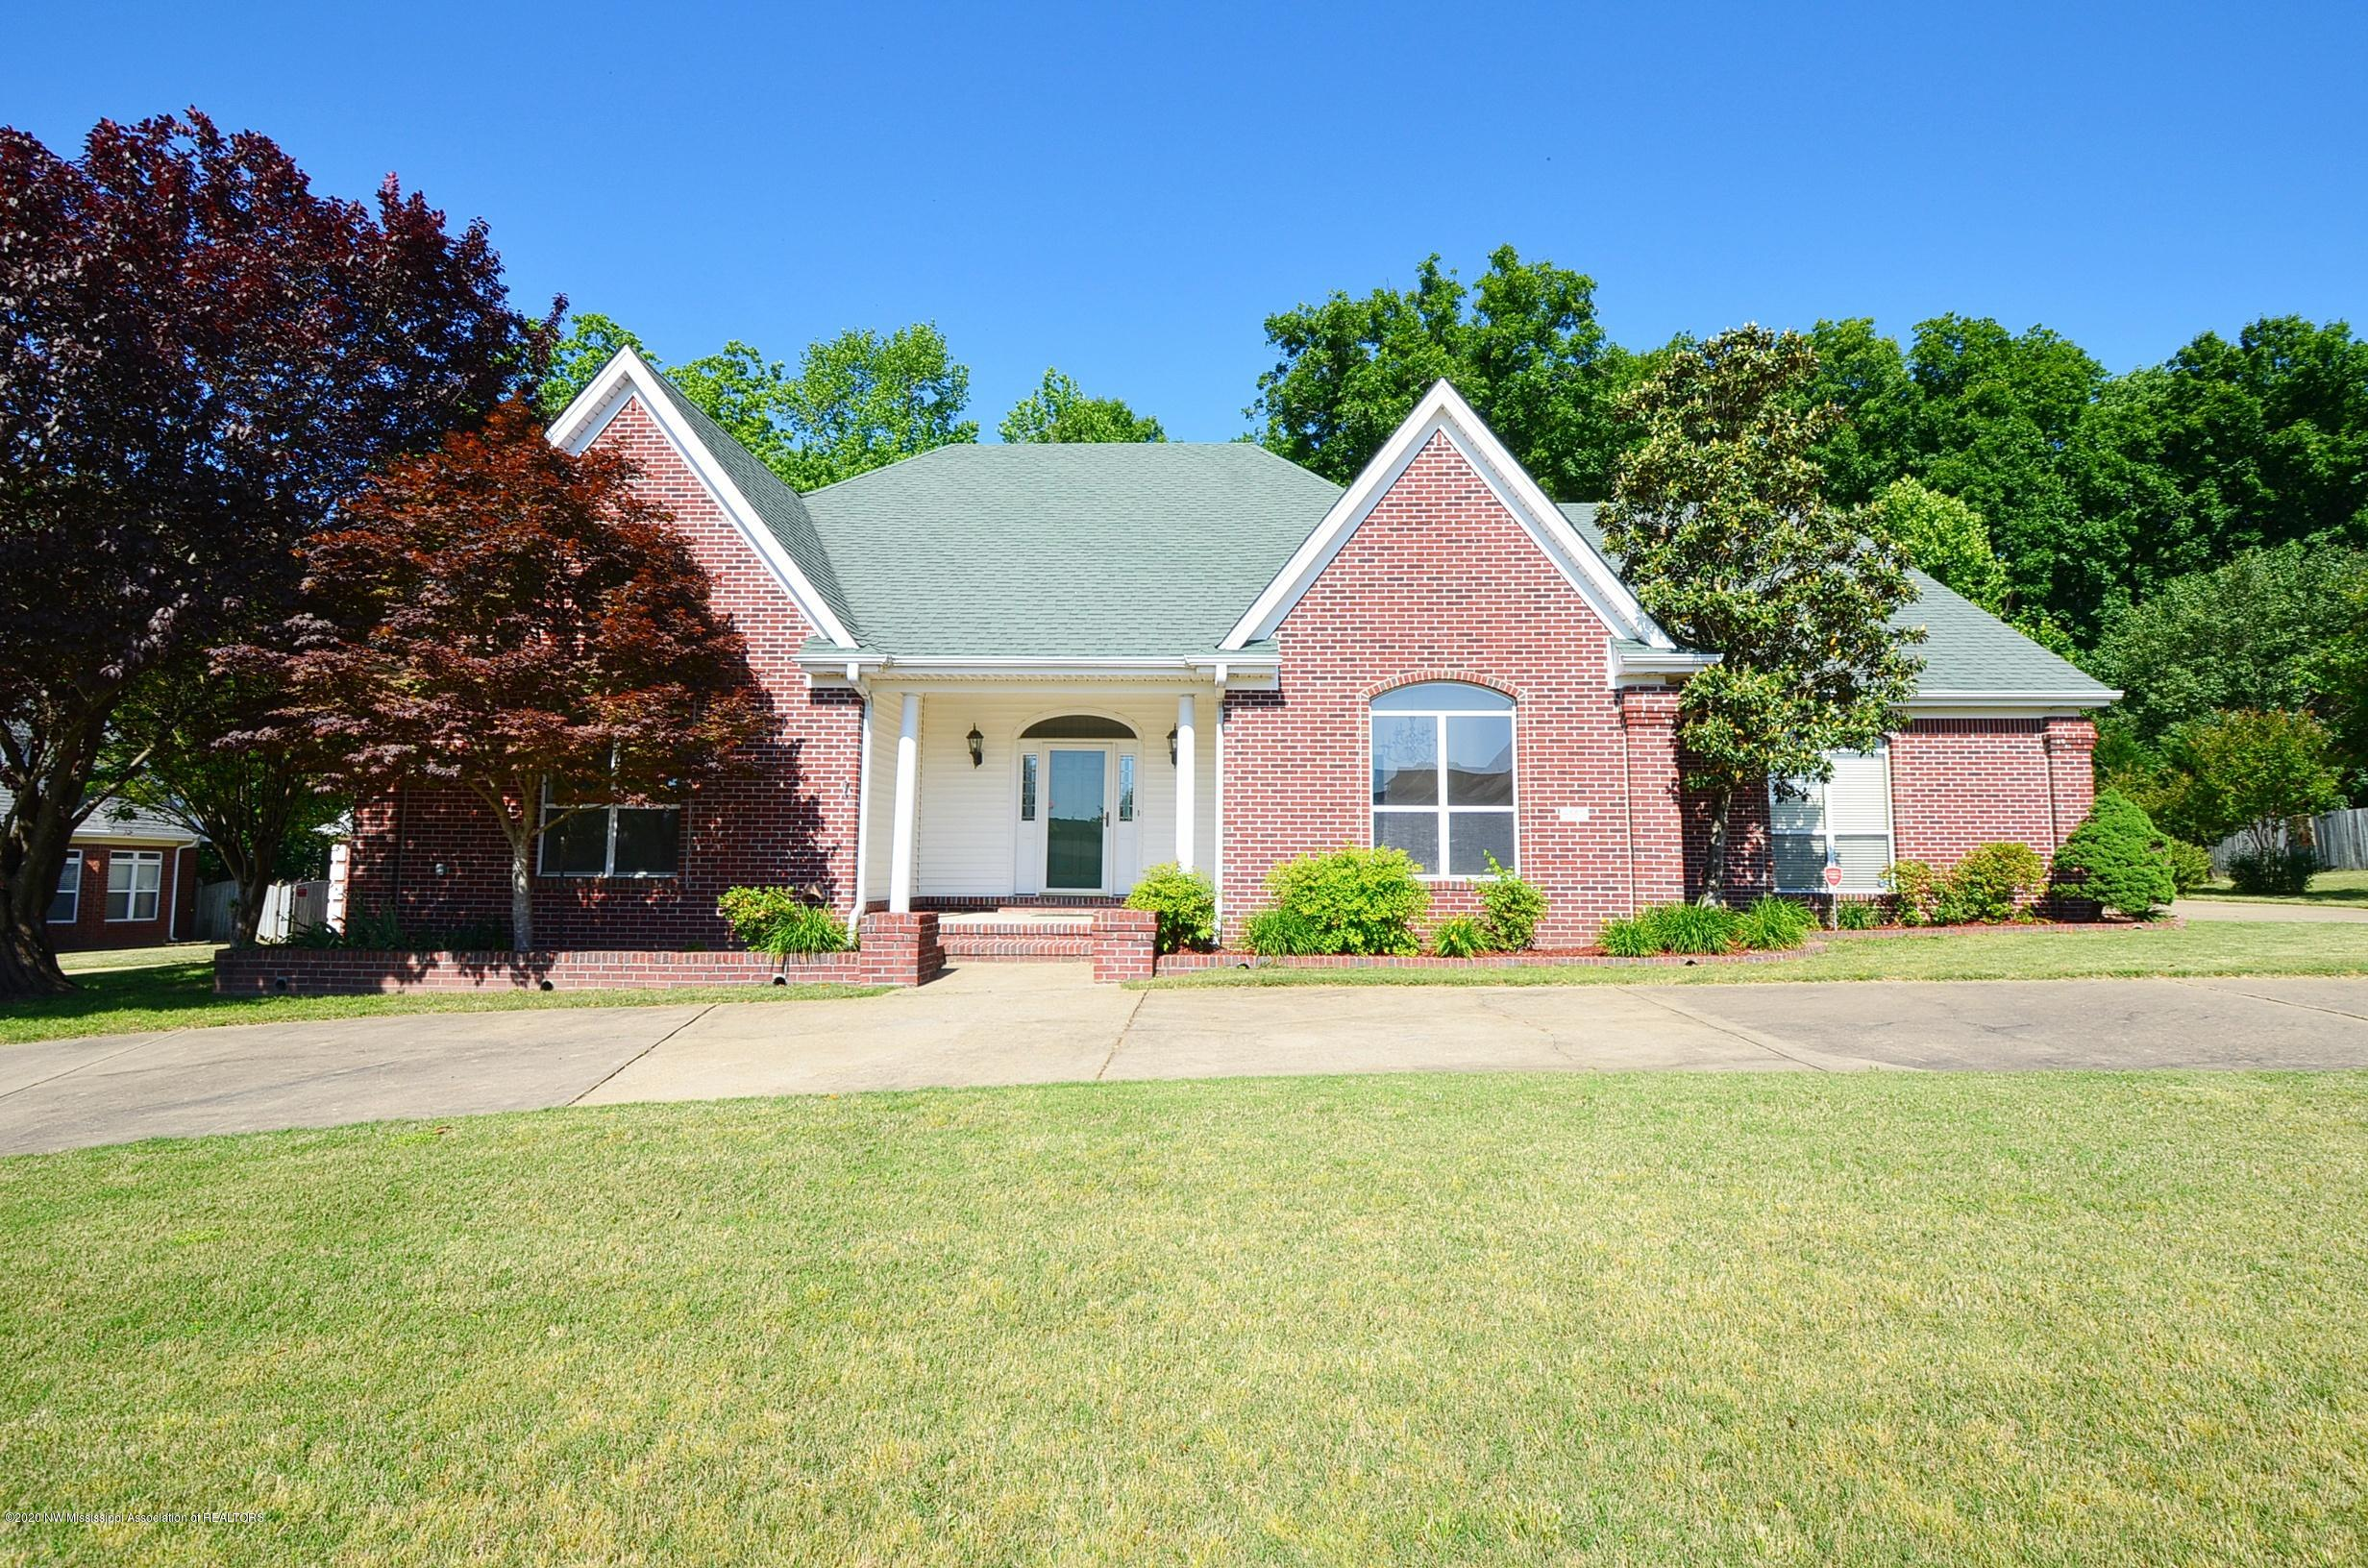 6557 Darren Drive, Olive Branch in DeSoto County, MS 38654 Home for Sale